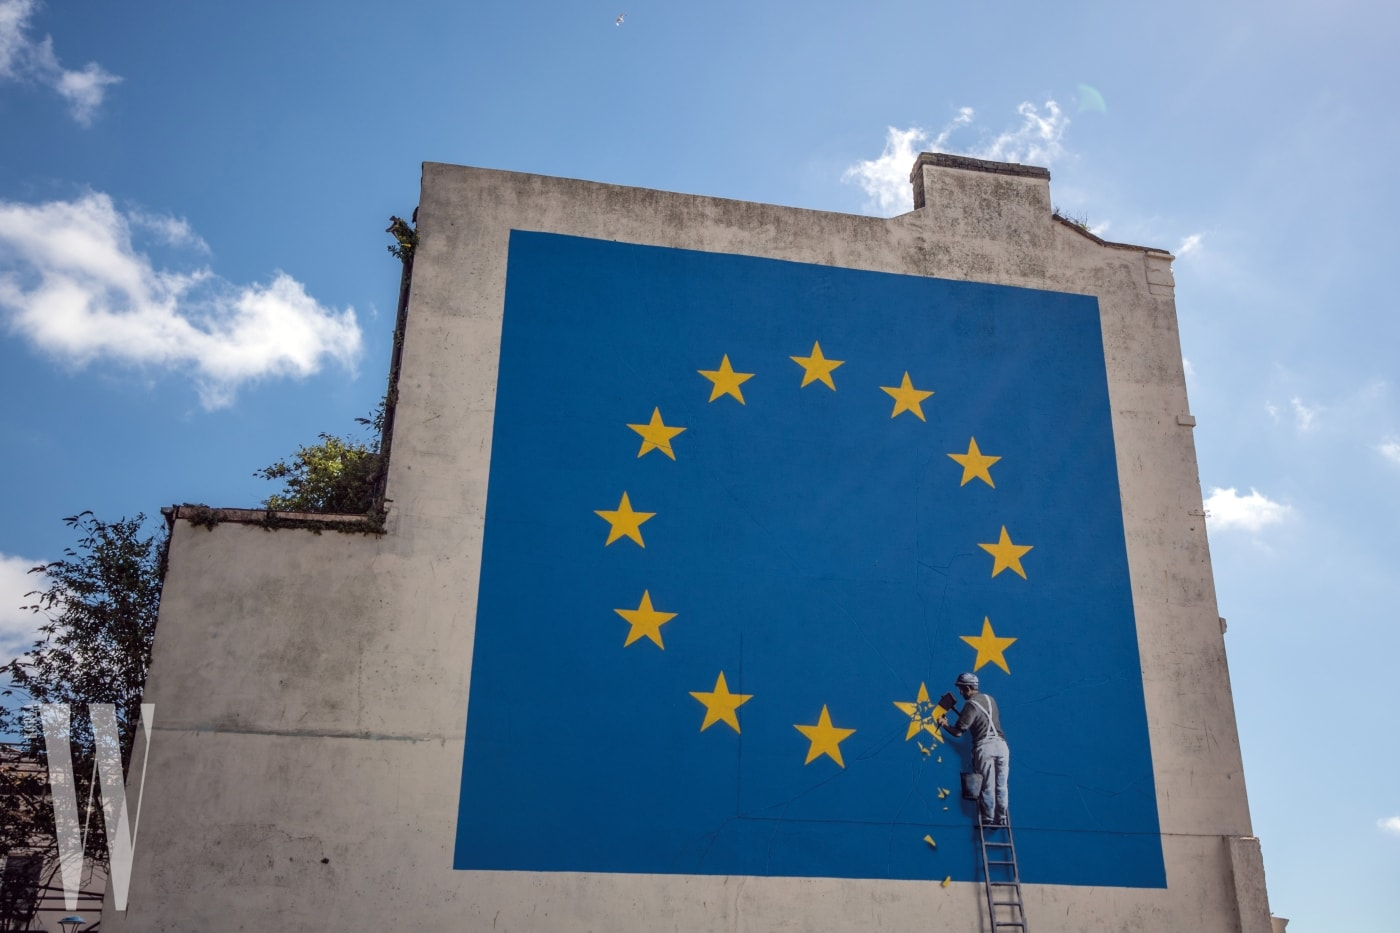 DOVER, ENGLAND - MAY 09:  A recently painted mural by British graffiti artist Banksy, depicting a workman chipping away at one of the stars on a European Union (EU) themed flag is pictured on May 9, 2017 in Dover, England. The work is the latest by Banksy, the anonymous England-based graffiti artist and political activist.  (Photo by Carl Court/Getty Images)